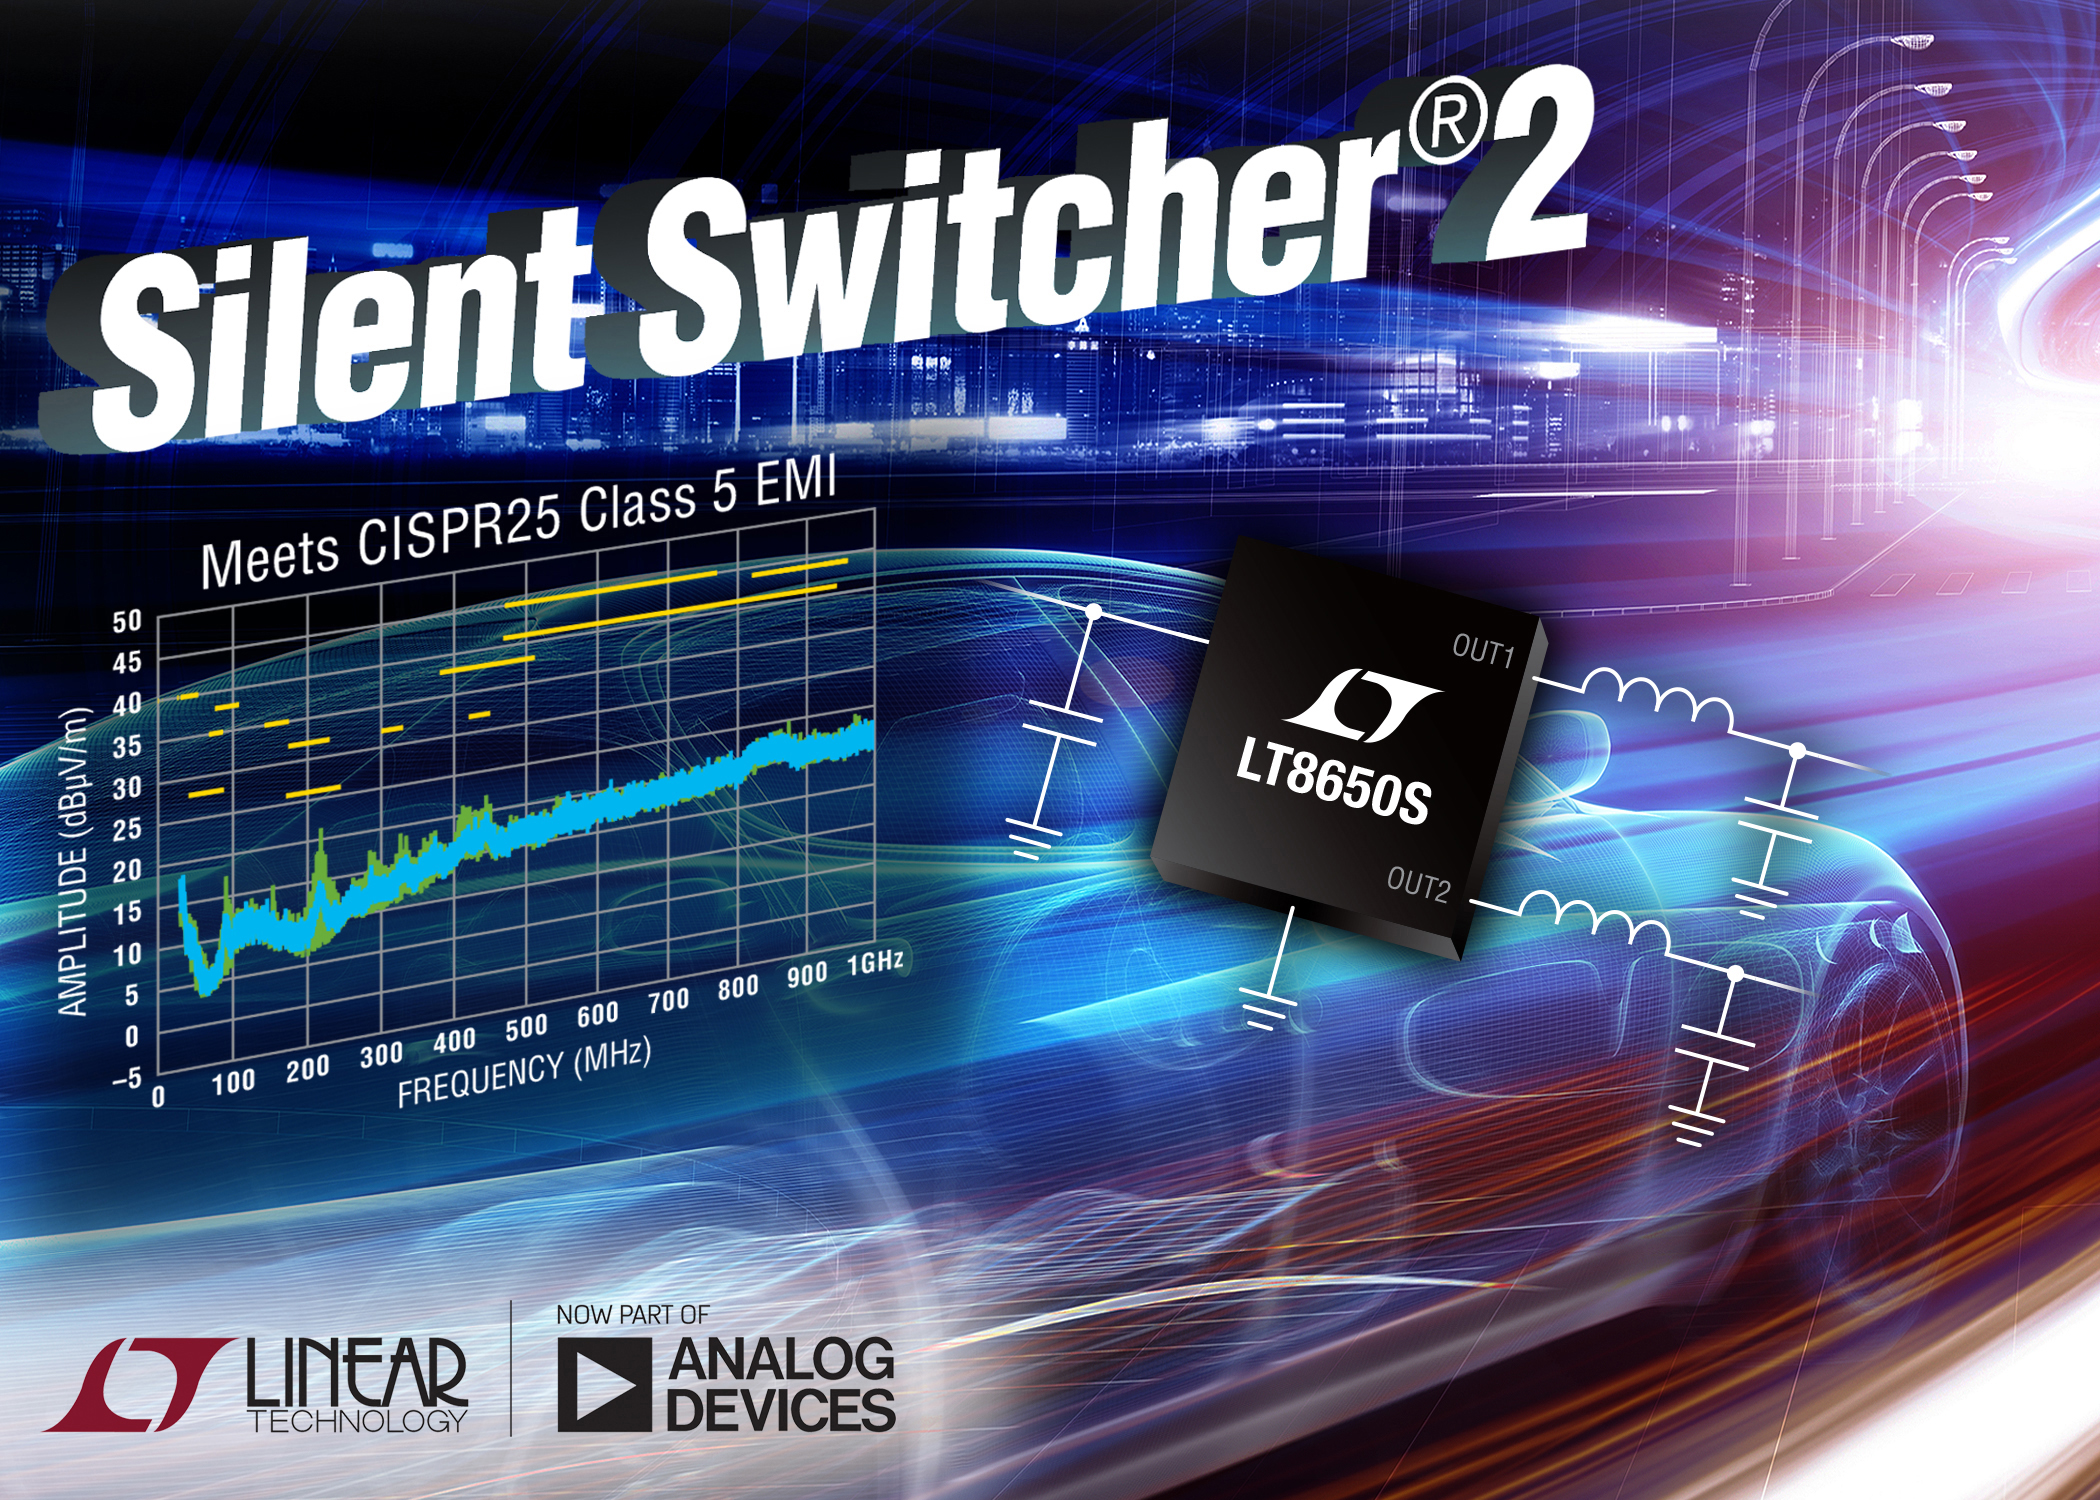 42V, Dual 4A, Synchronous Step-Down Silent Switcher 2 Delivers 94% Efficiency at 2MHz & Ultralow EMI Emissions